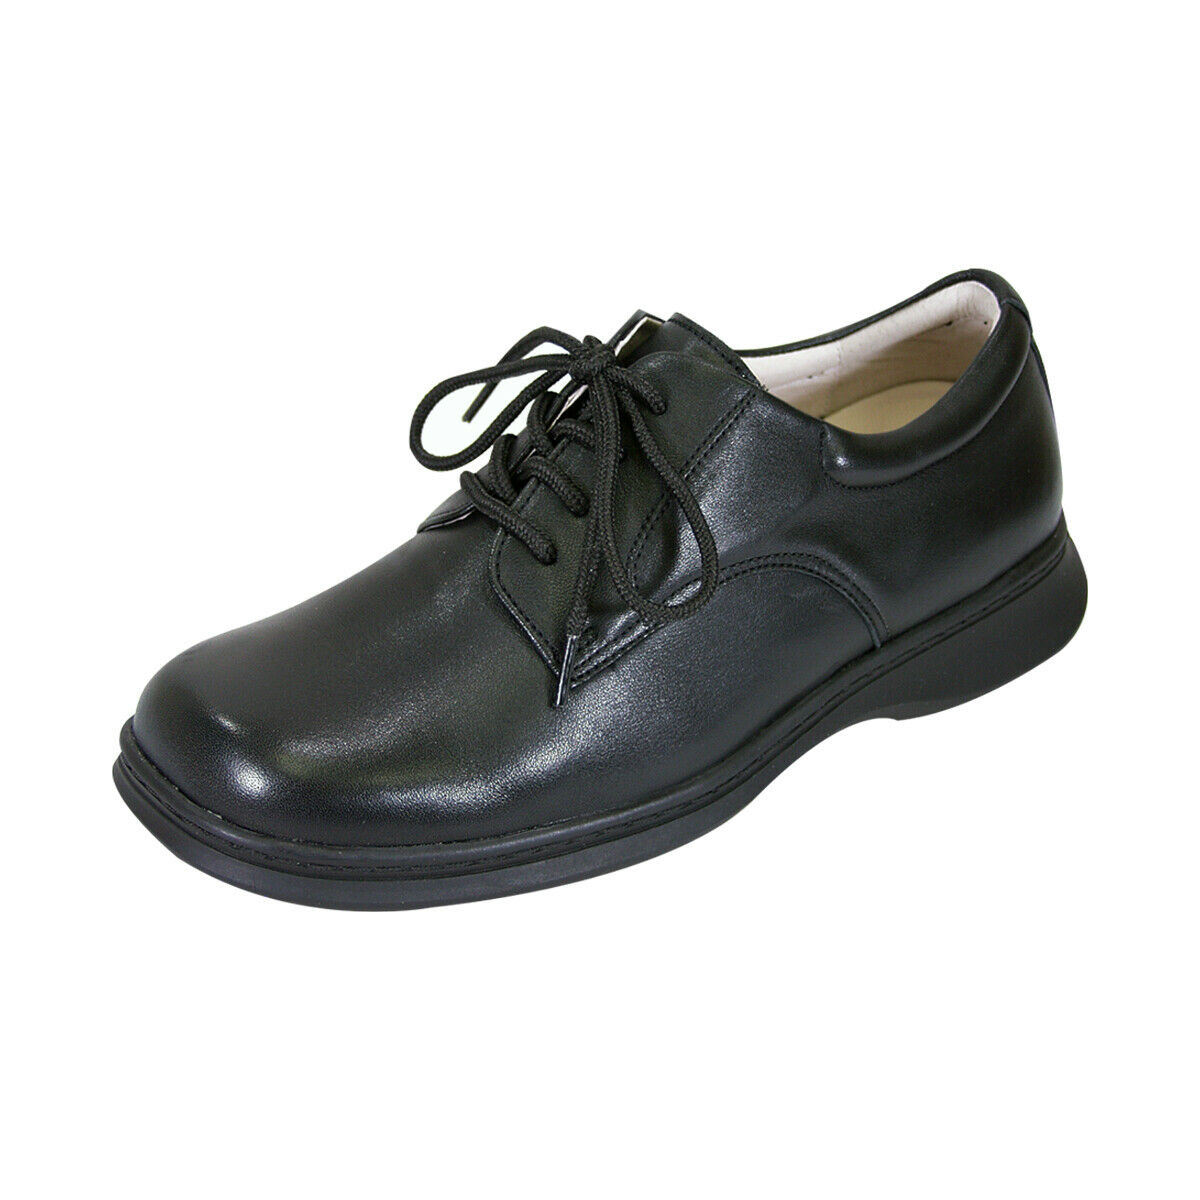 24 HOUR COMFORT Tim Men Wide Width Leather Lace Up Classic scarpe